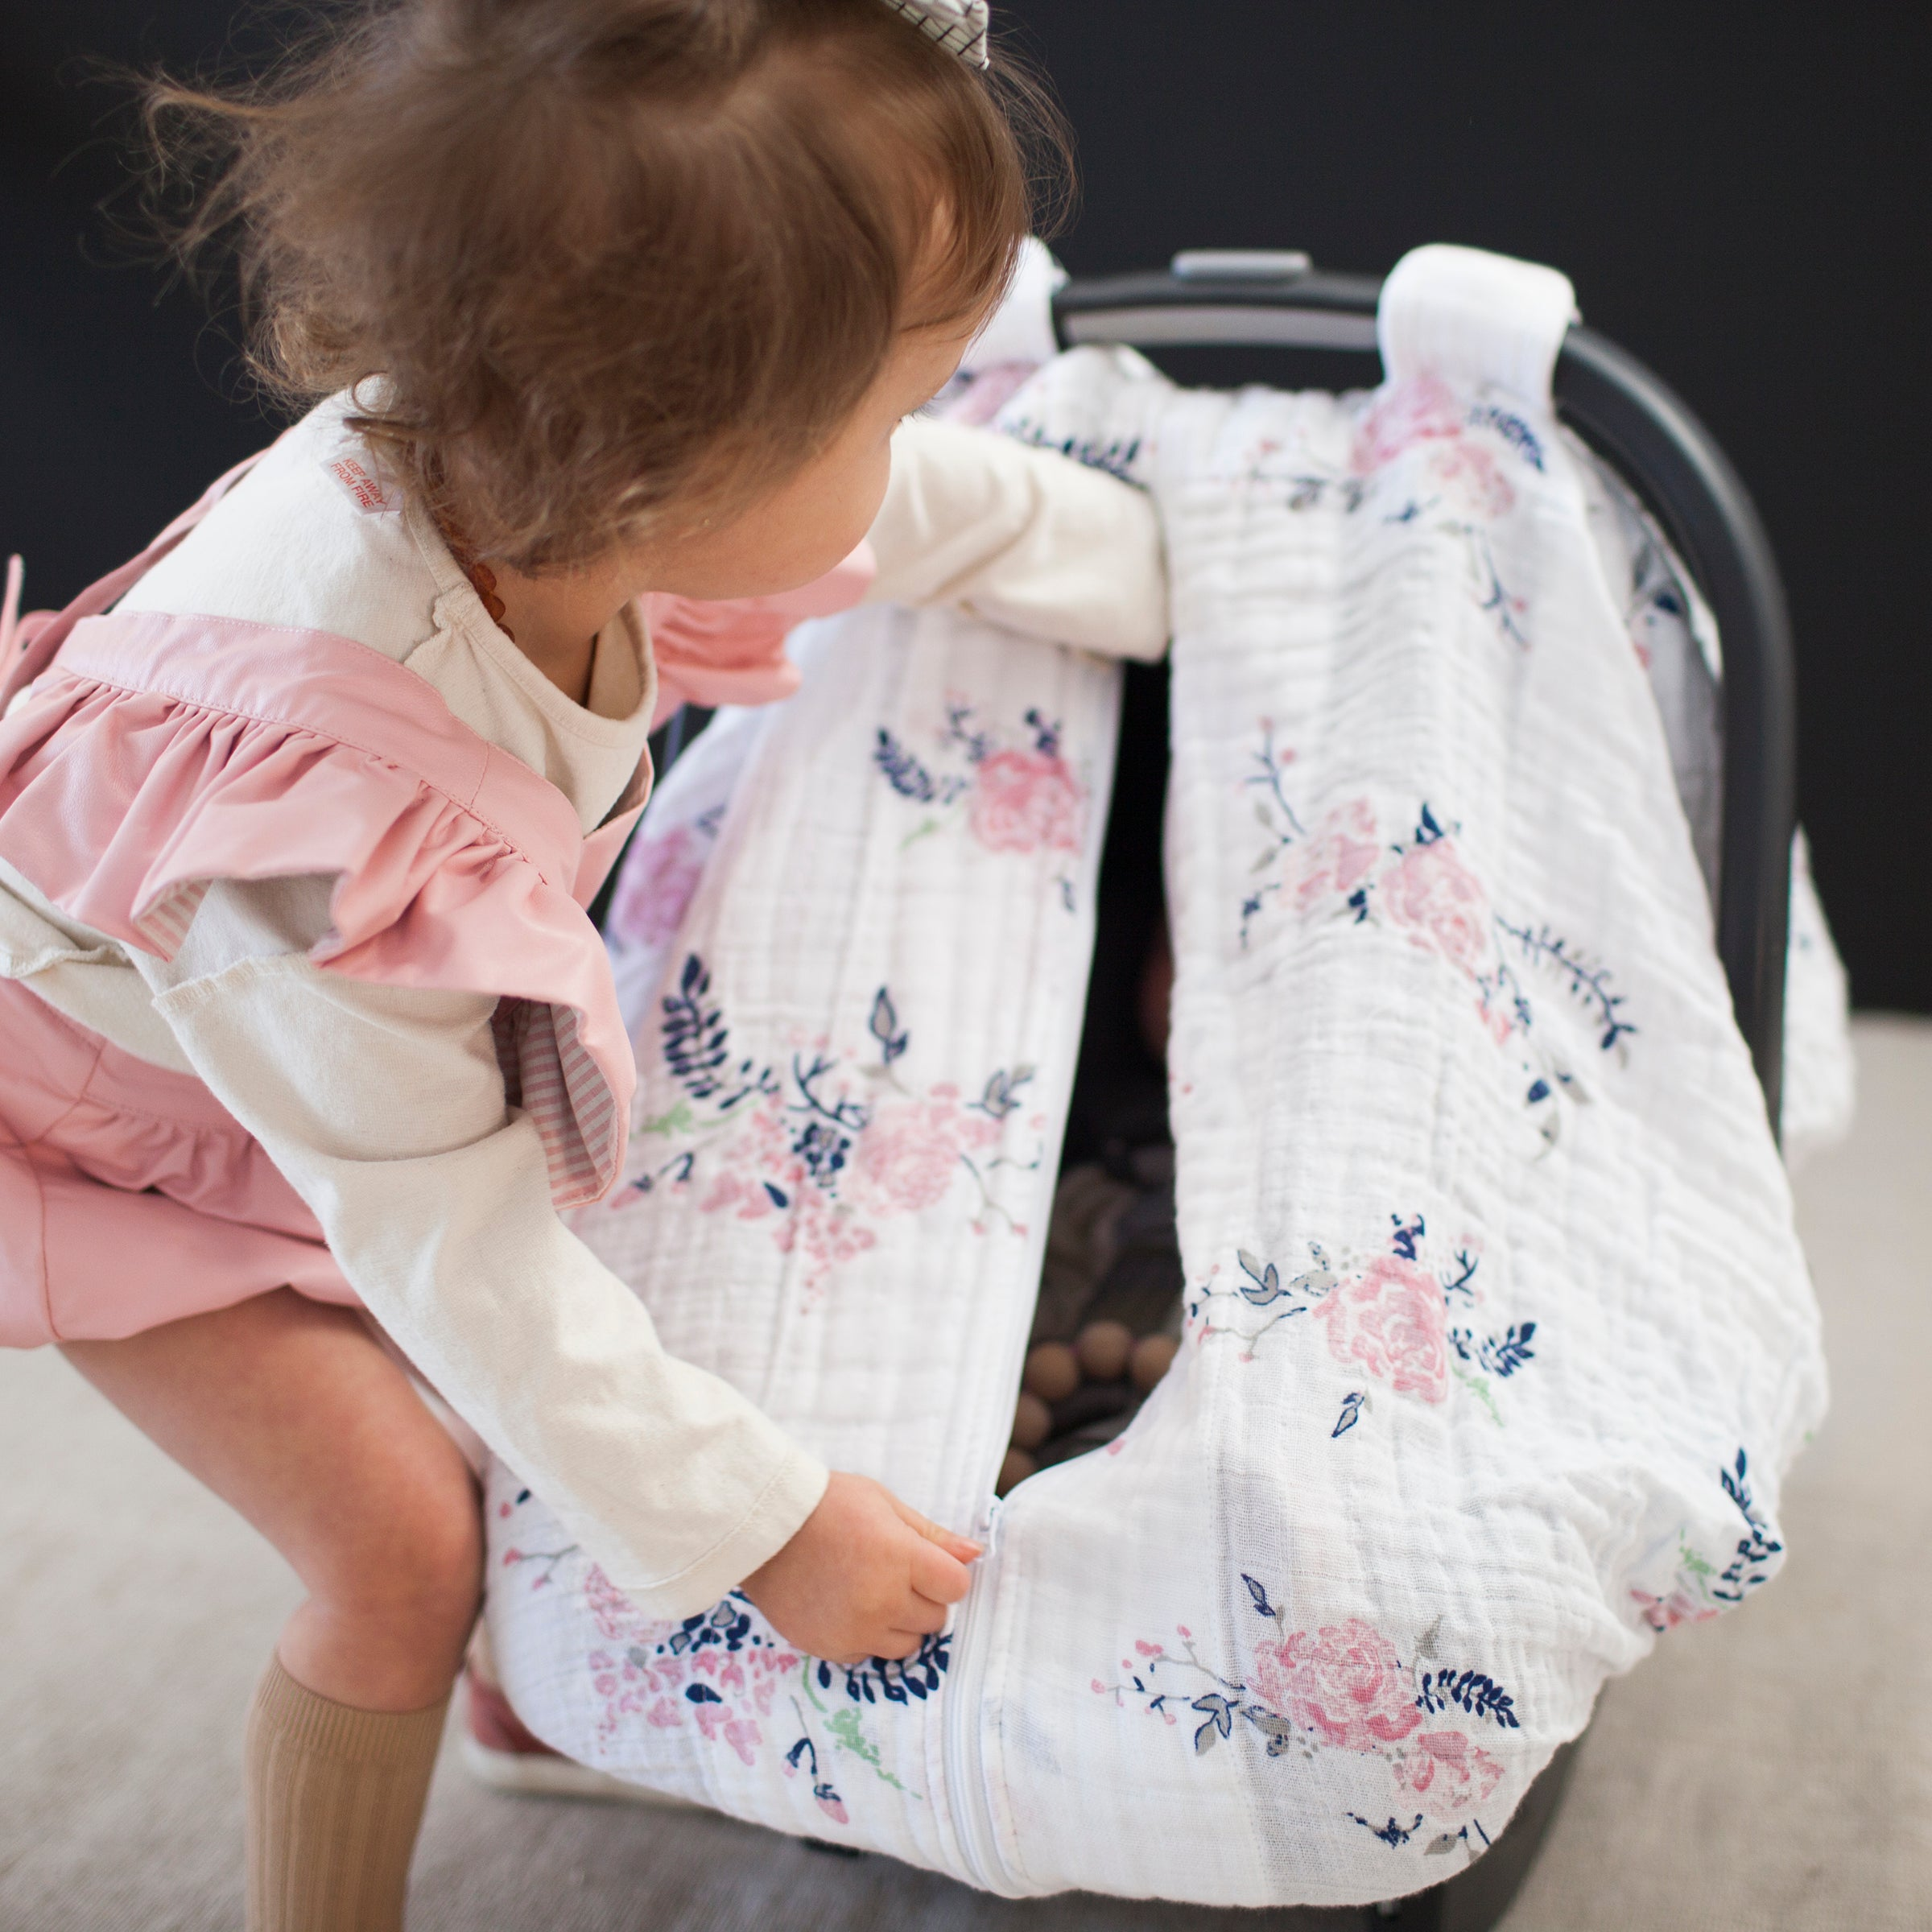 Garland Muslin Car Seat Cover - Car Seat Cover - Bebe au Lait